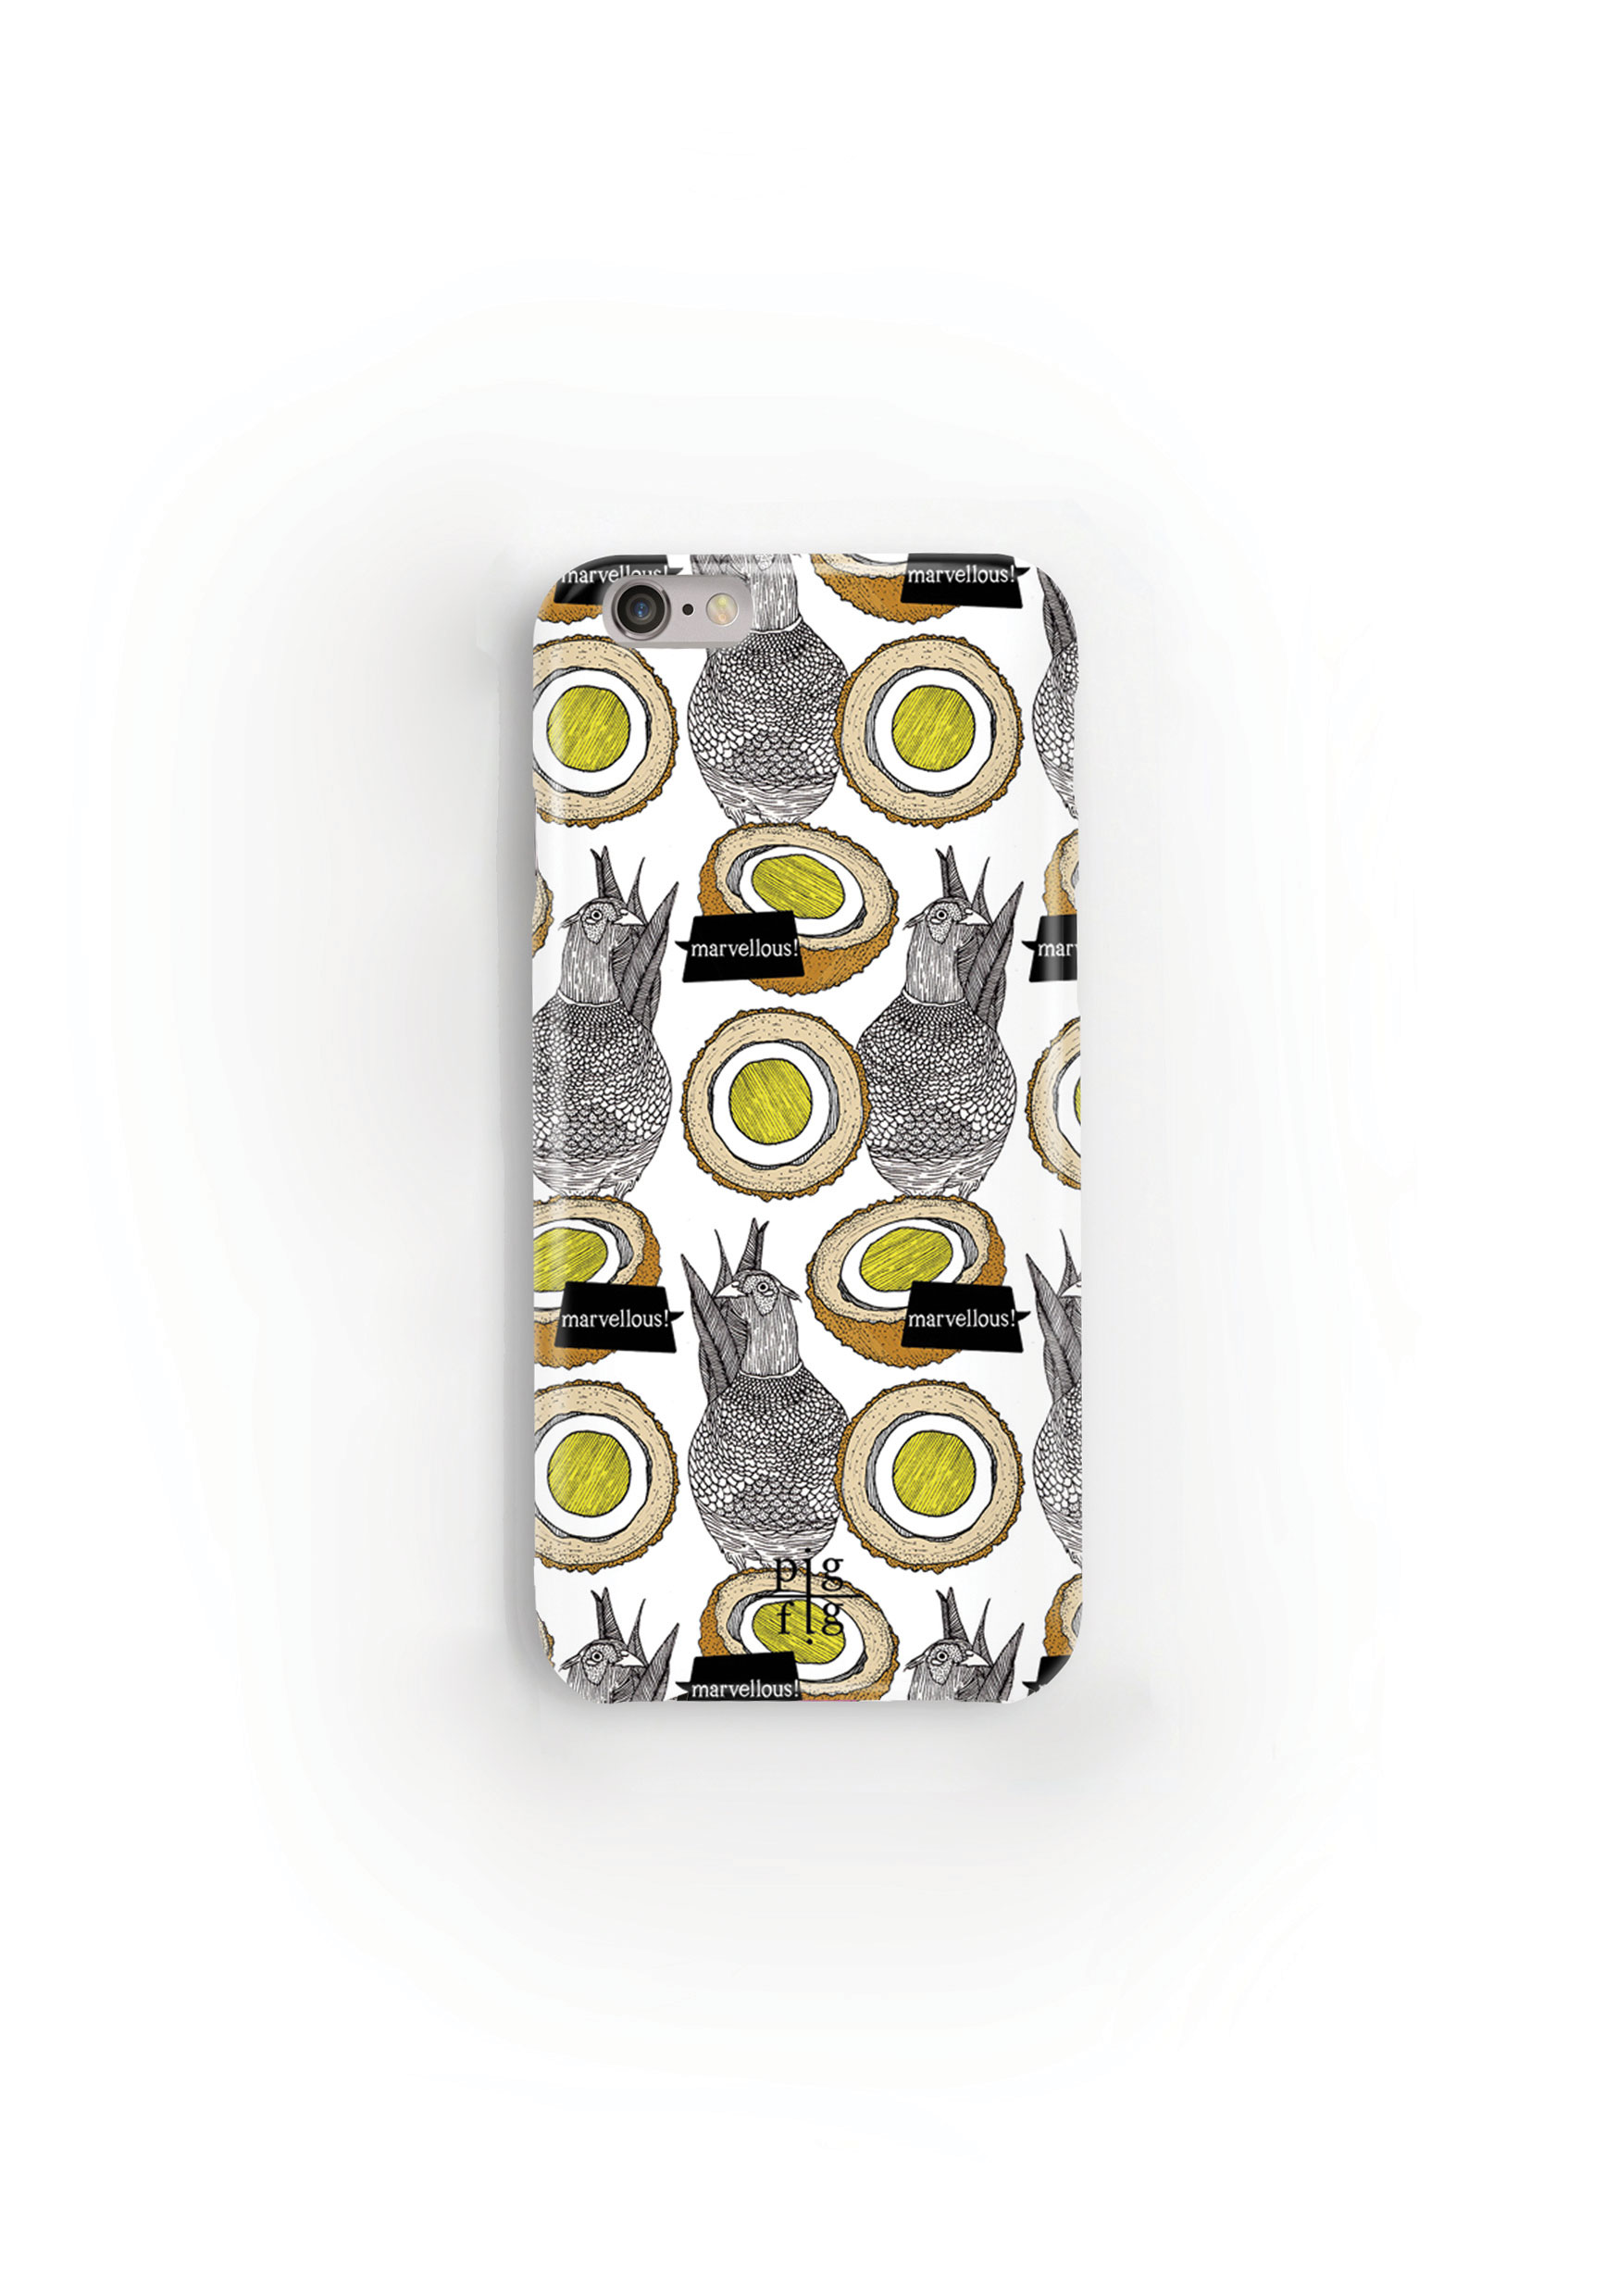 Pheasant & Scotch Egg Phone Case